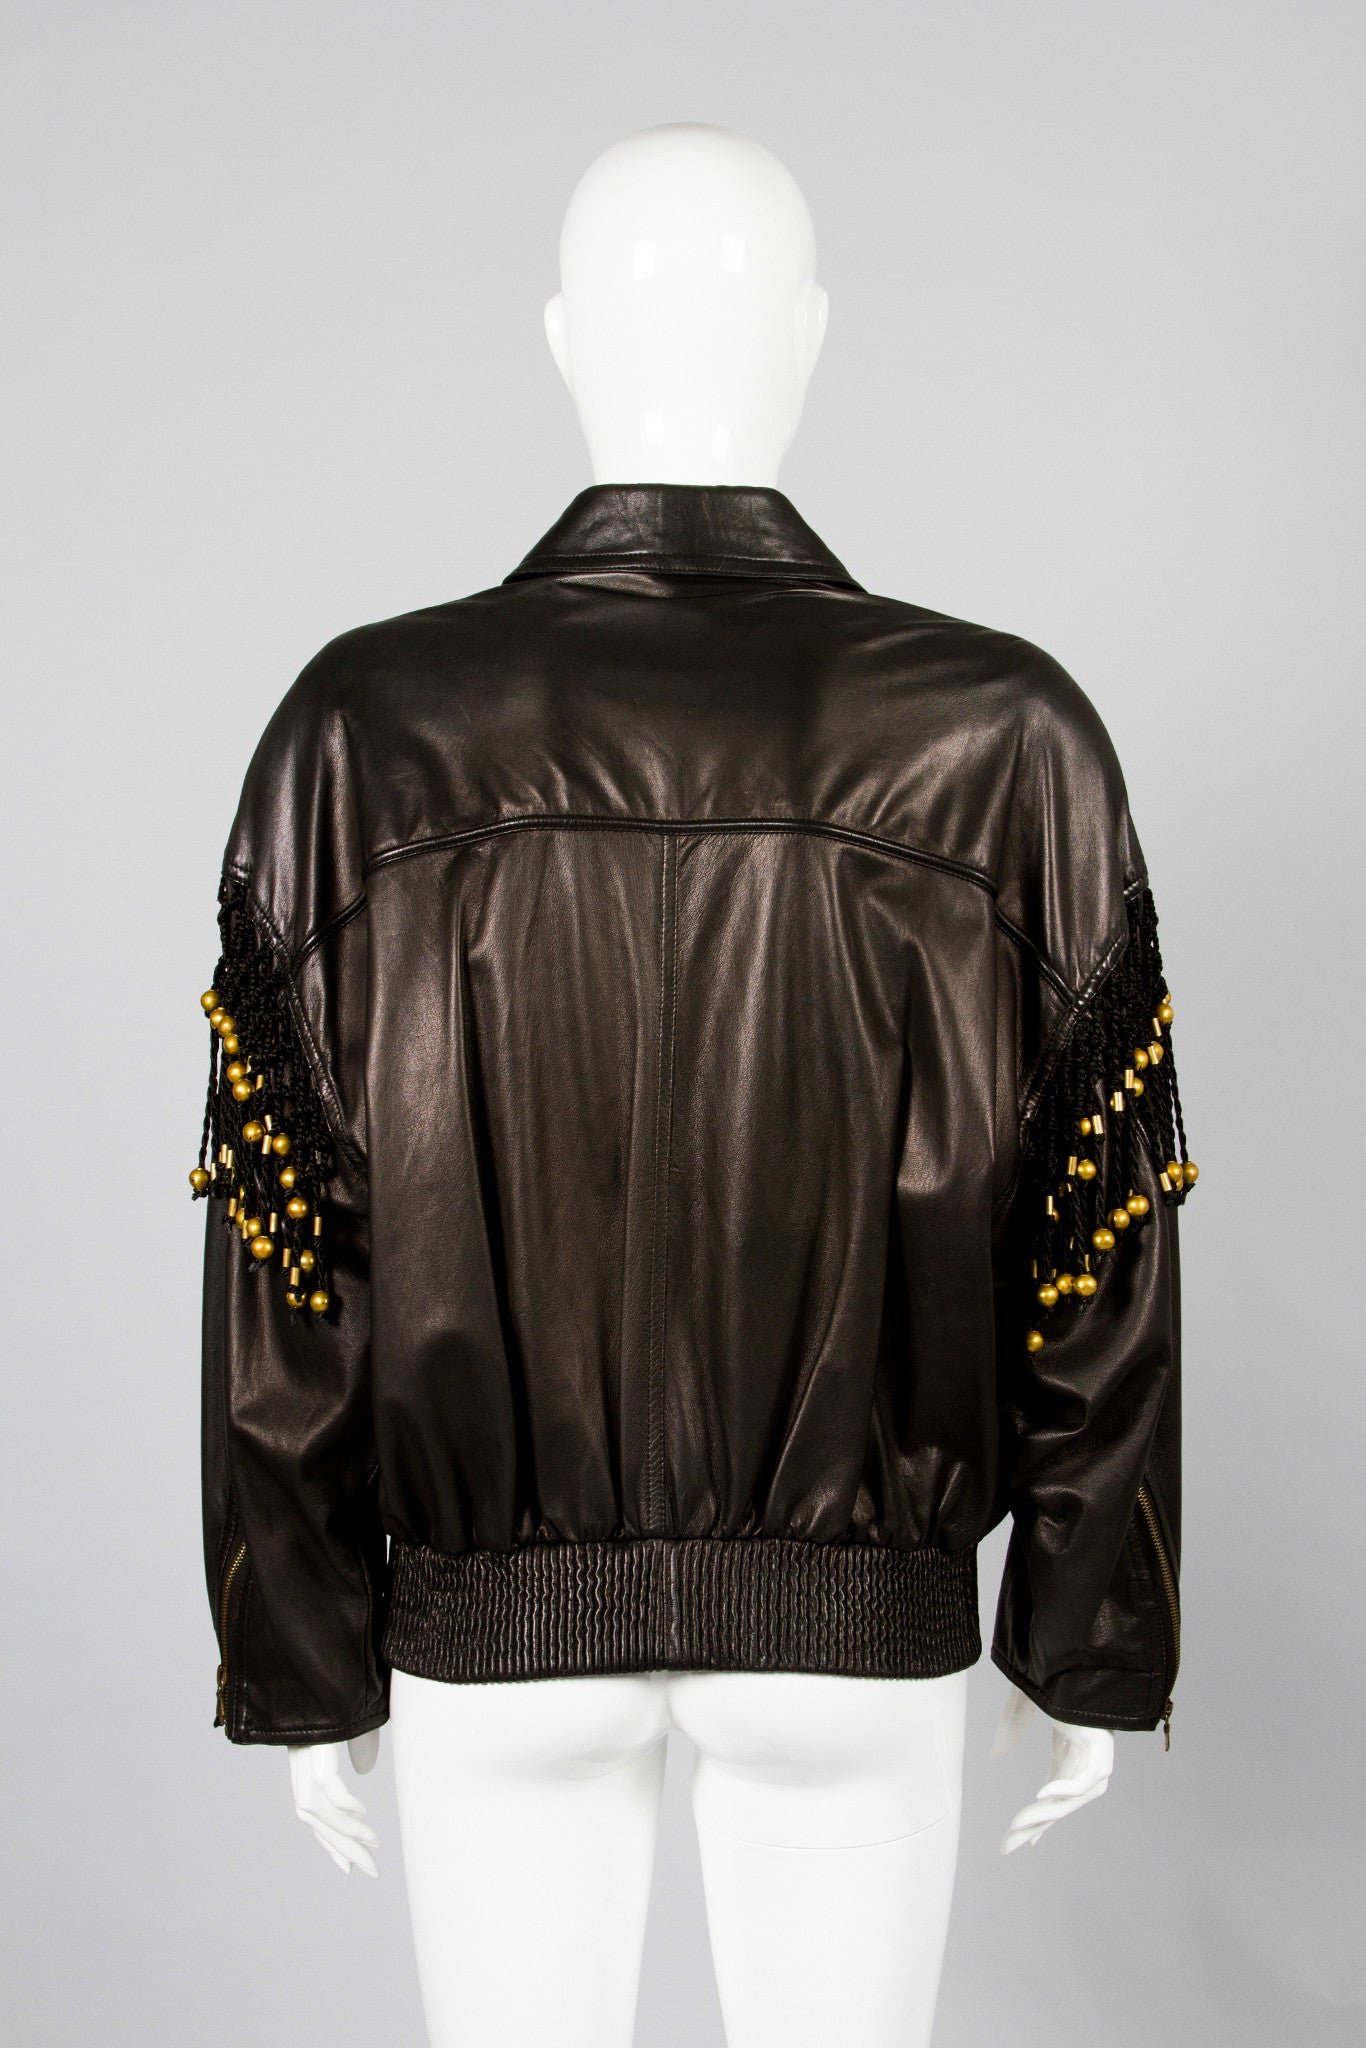 Gianni Versace Leather Macrame Jacket Back